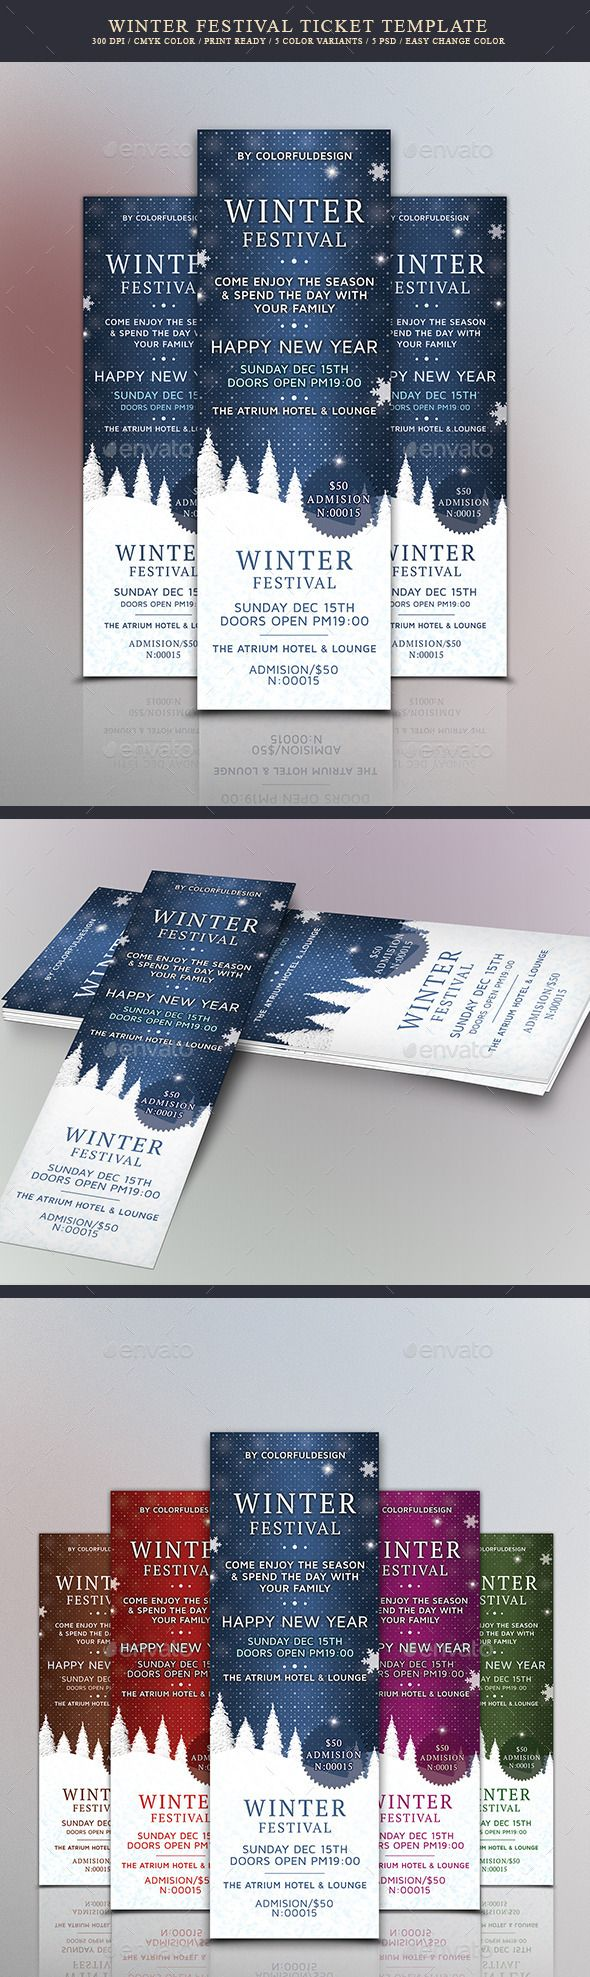 Concert Ticket Template Free Download Awesome 139 Best Invitation Design Images On Pinterest  Christmas Parties .